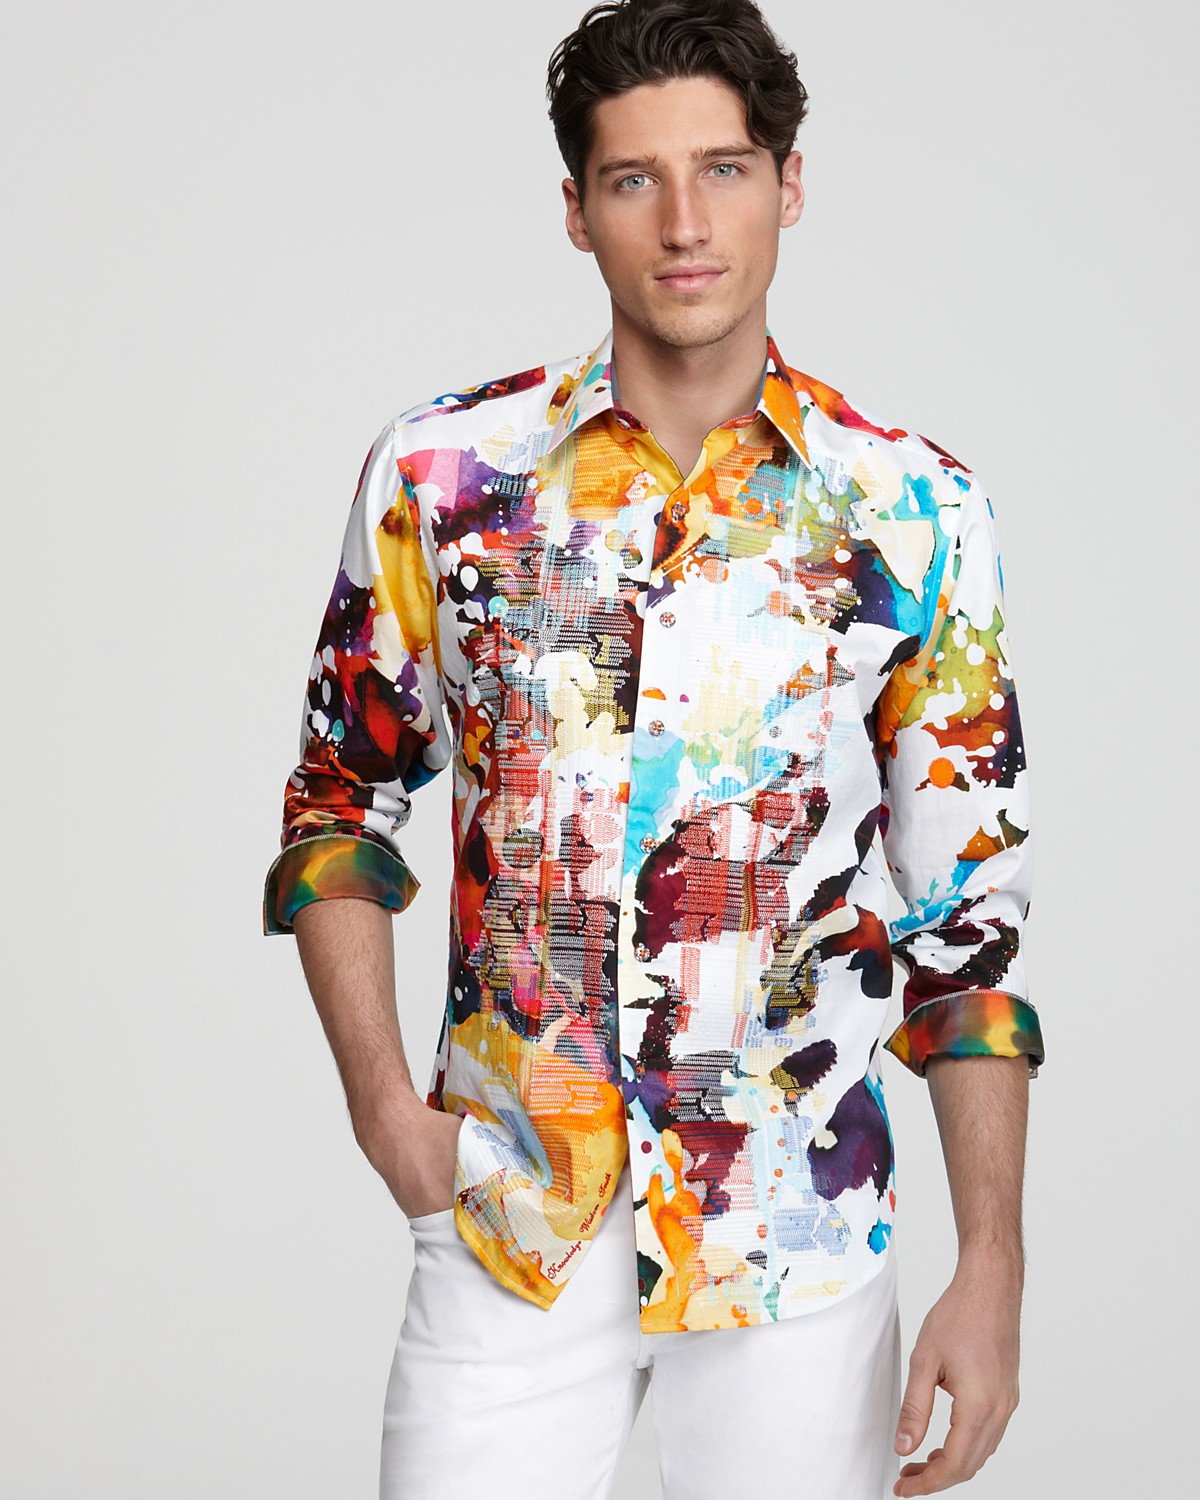 Ryan Kennedy Wears Summer Shirts for Bloomingdale's